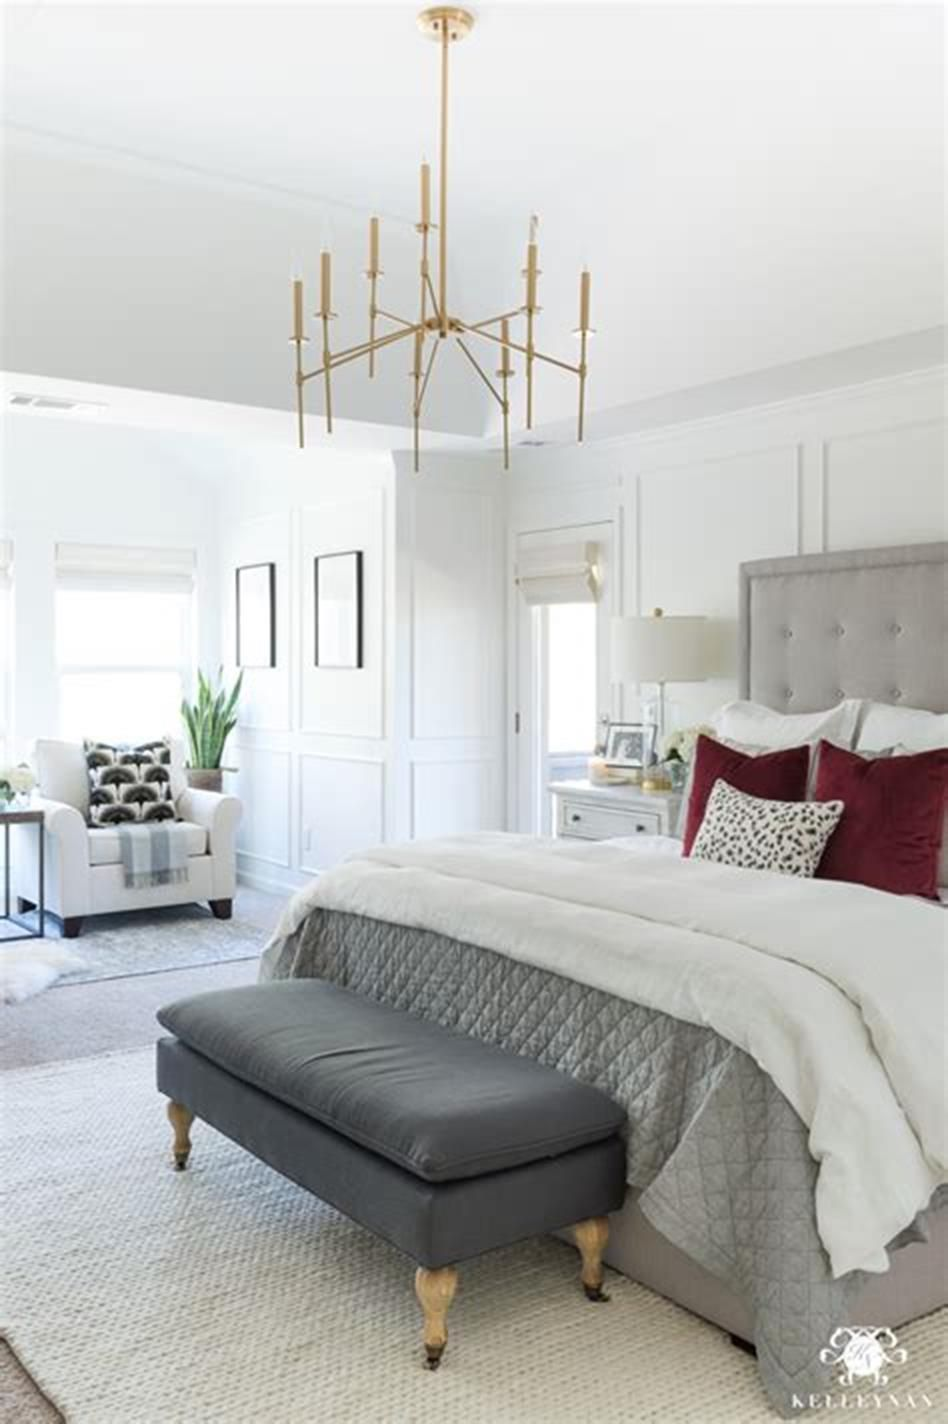 30 Romantic Cozy Master Bedroom Decorating Ideas 2019 Master Bedroom Makeover Bedroom Interior Master Bedroom Wall Decor